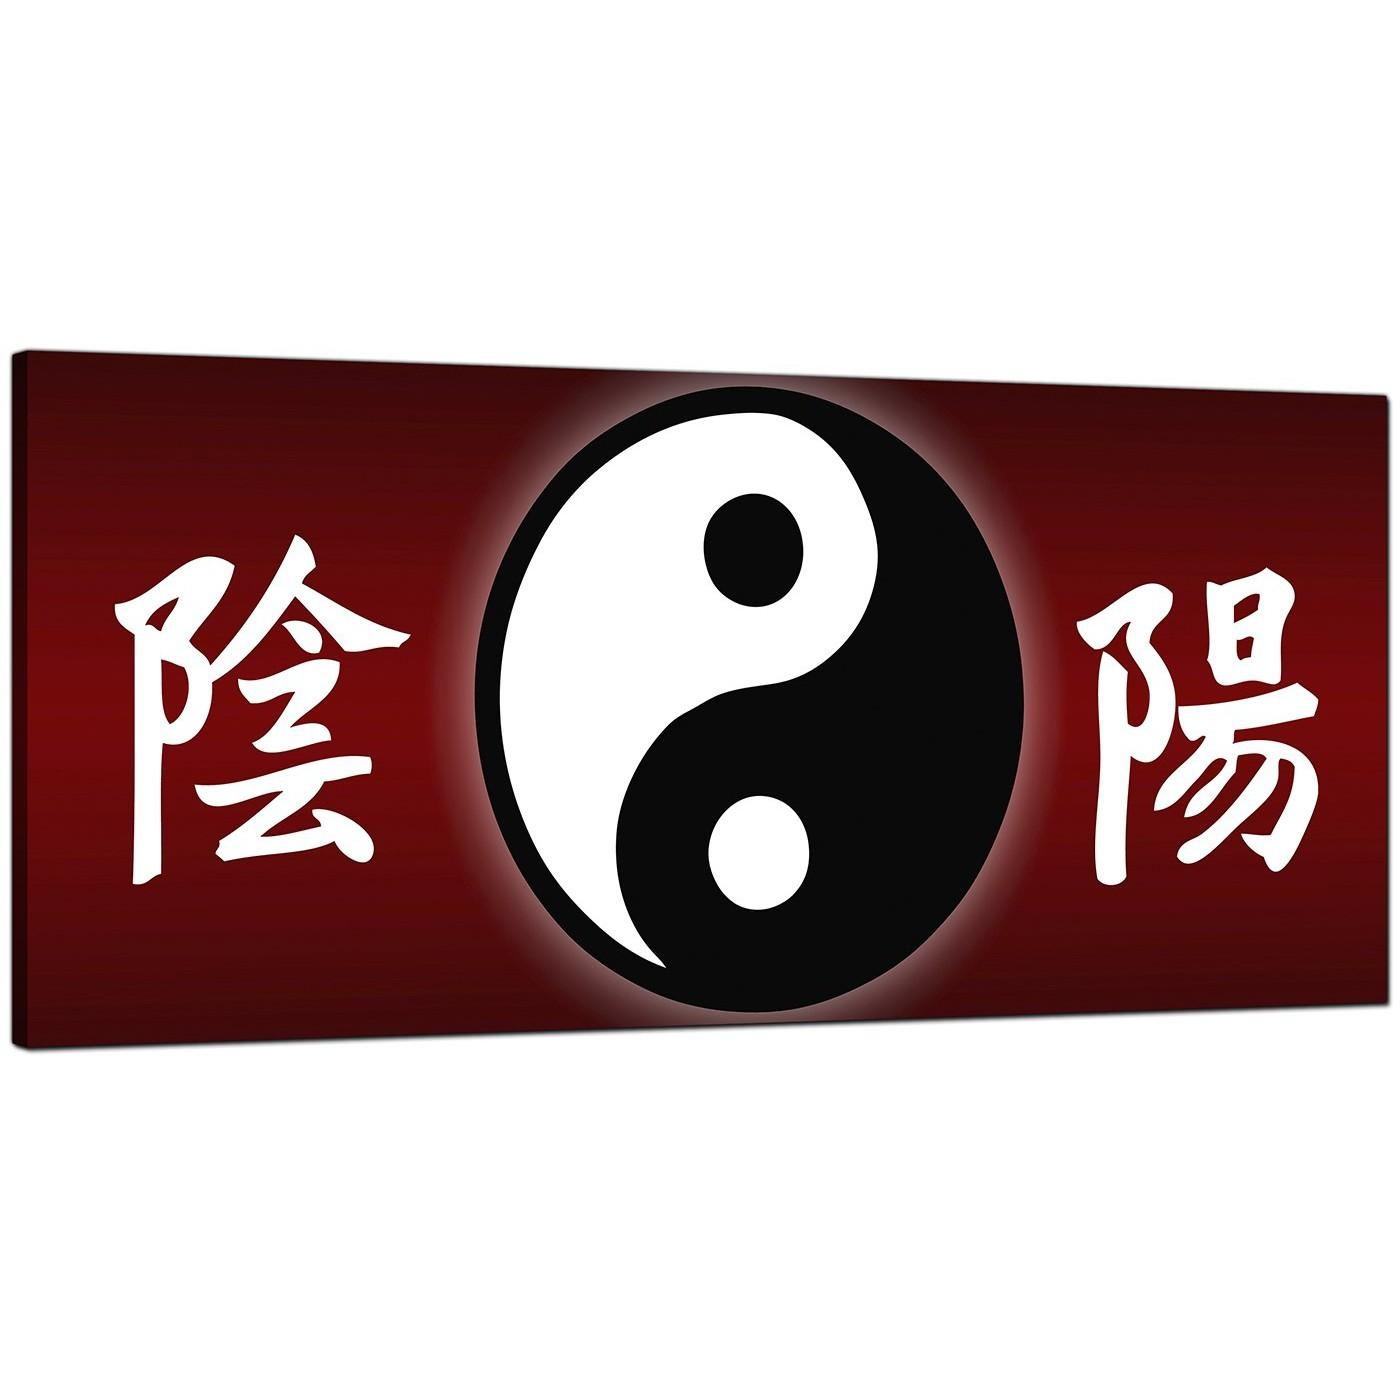 Cheap Red Canvas Wall Art Of Chinese Writing And Yin Yang Symbol Intended For Chinese Symbol Wall Art (View 17 of 20)